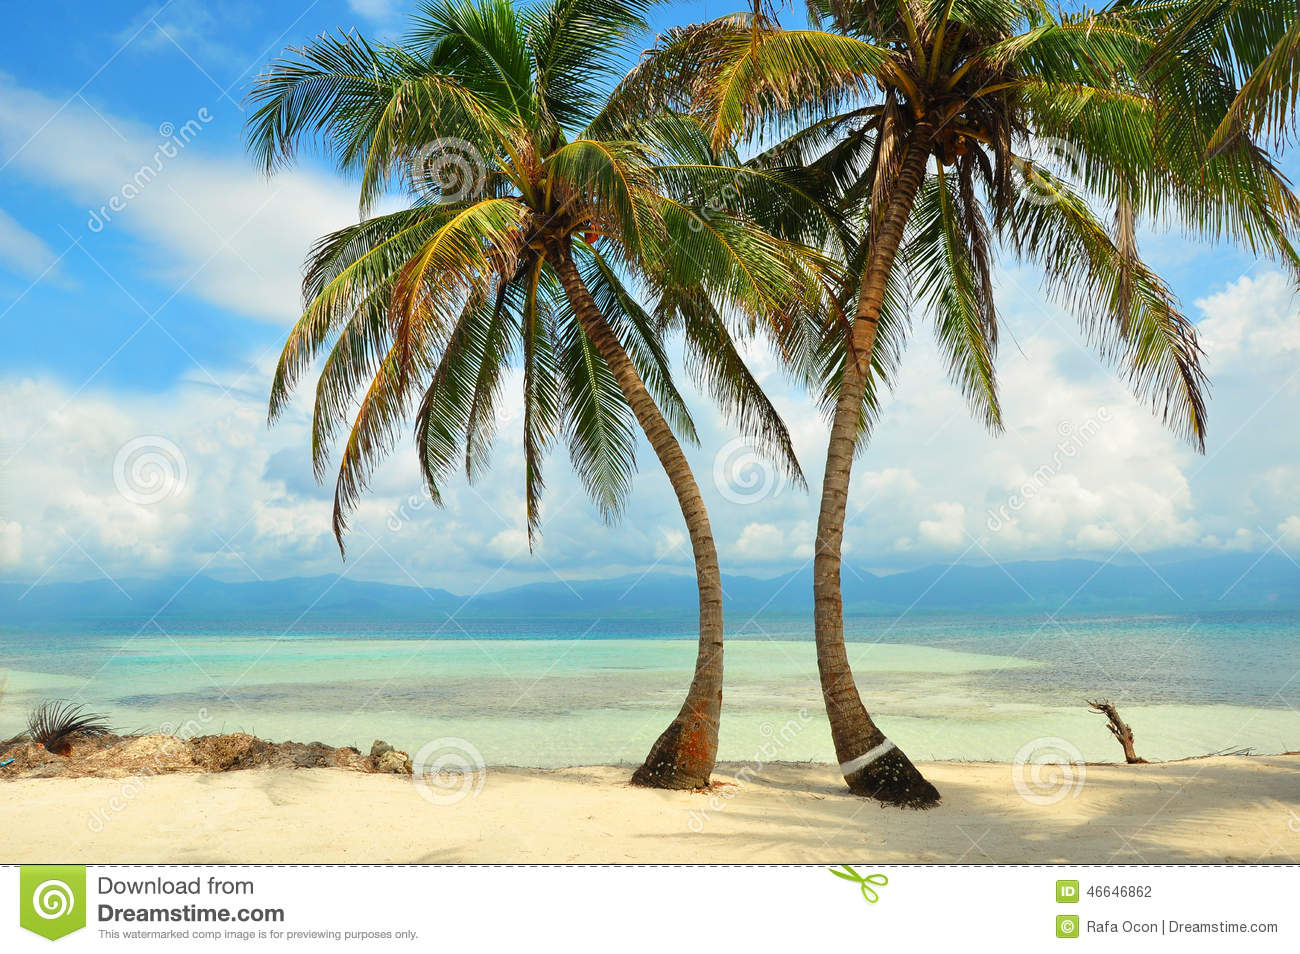 Palms On The Beach In The Caribbean Sea Stock Photo ...